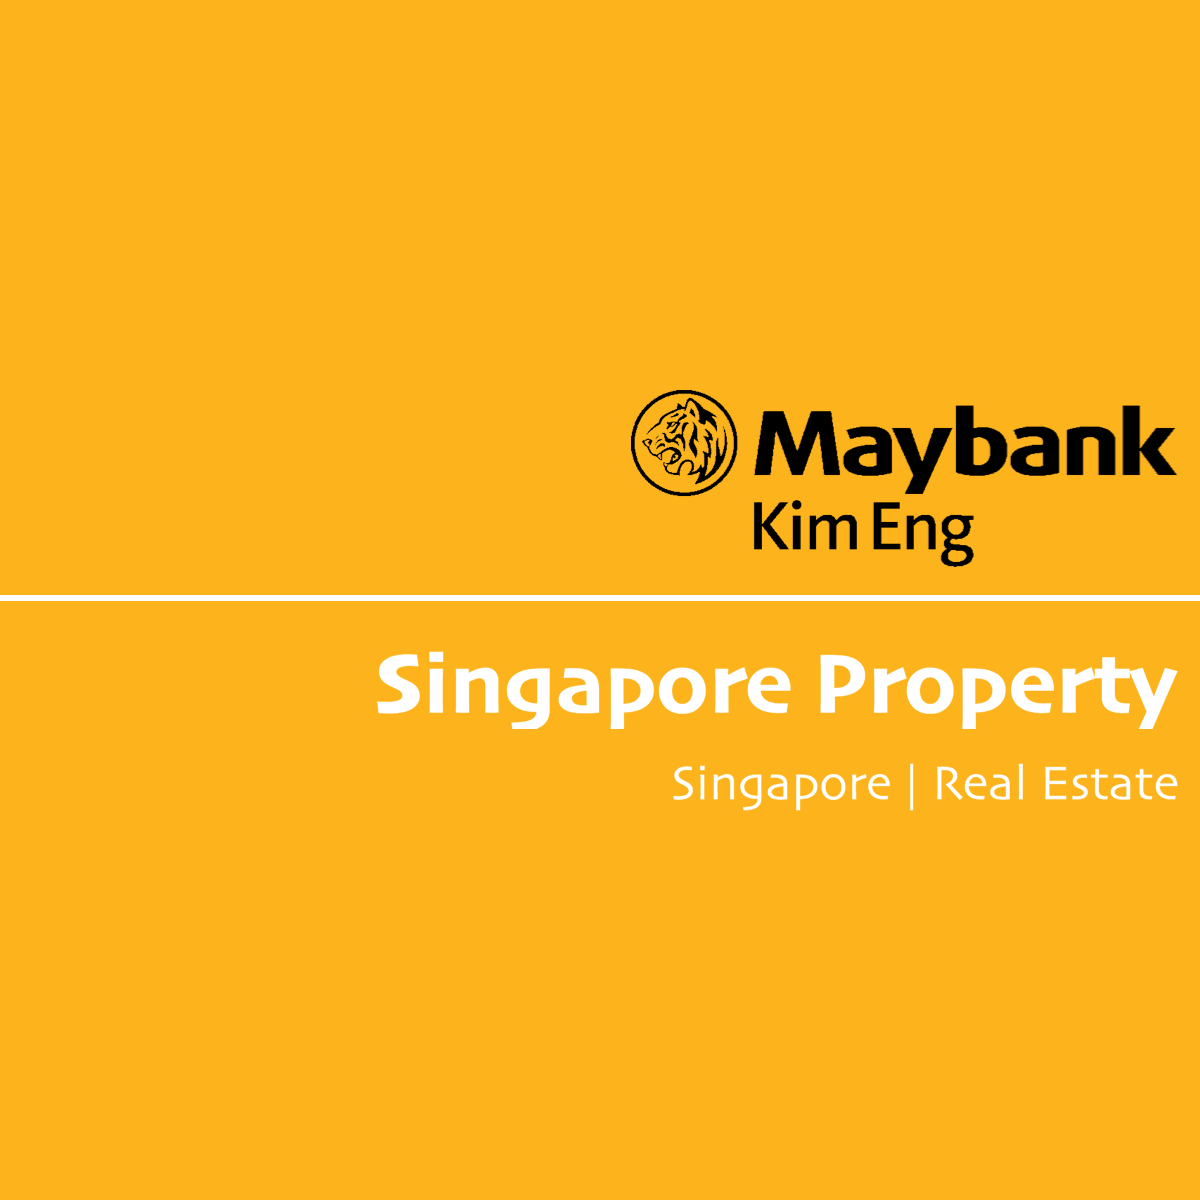 Singapore Property - Maybank Kim Eng 2017-03-15: Evaluating Upside Risks to Home Prices